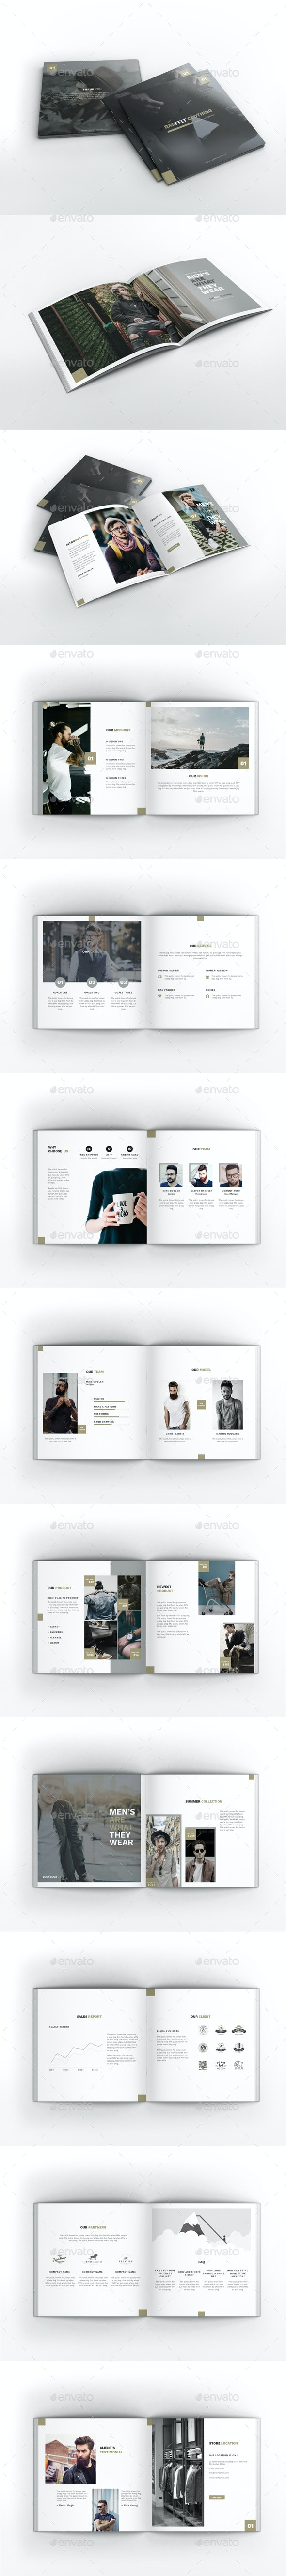 Man Fashion Square Brochure Template - Brochures Print Templates